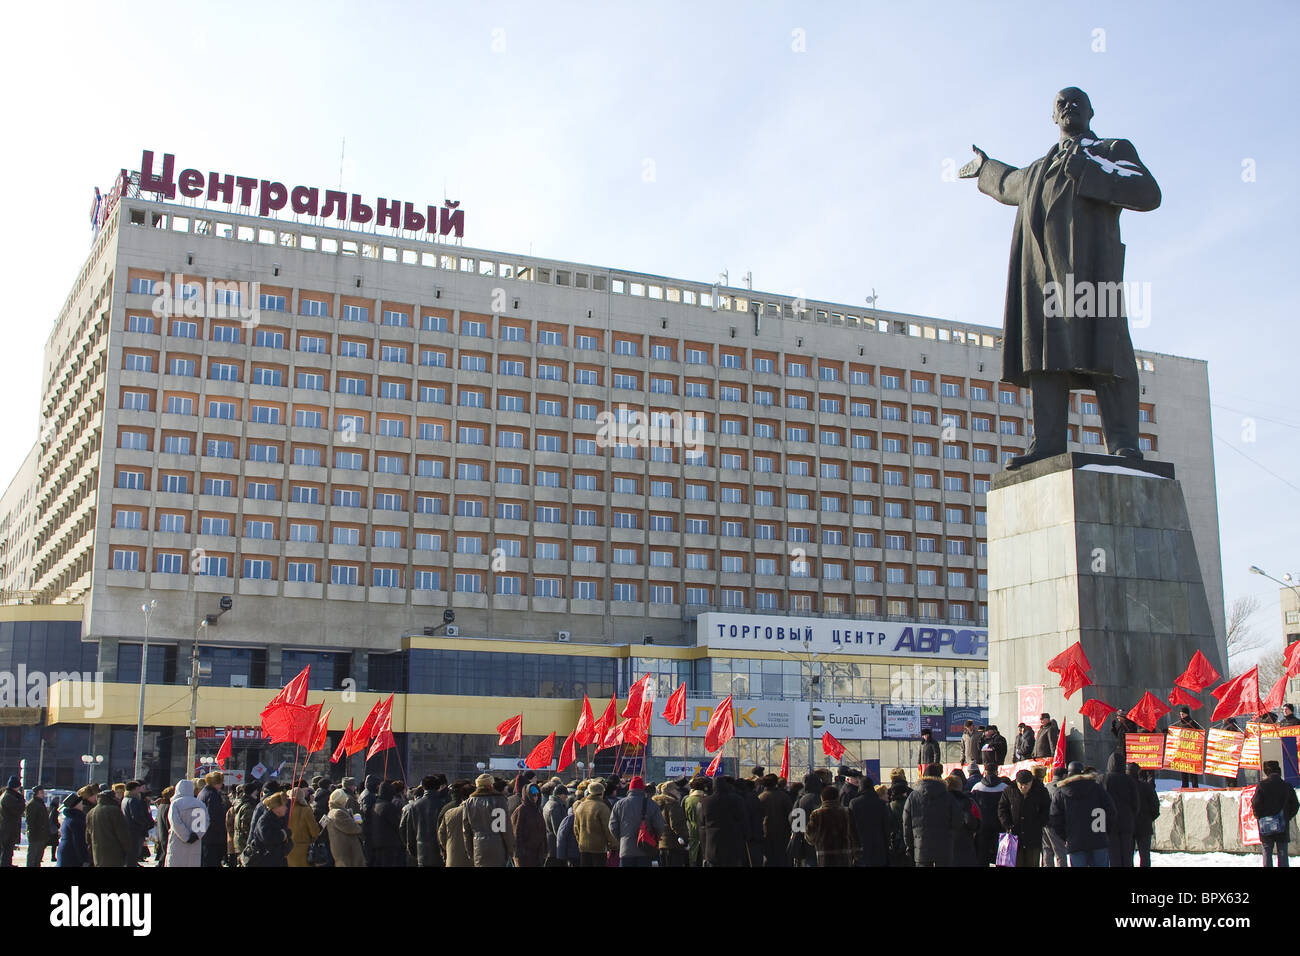 Russians protest government's social policy - Stock Image